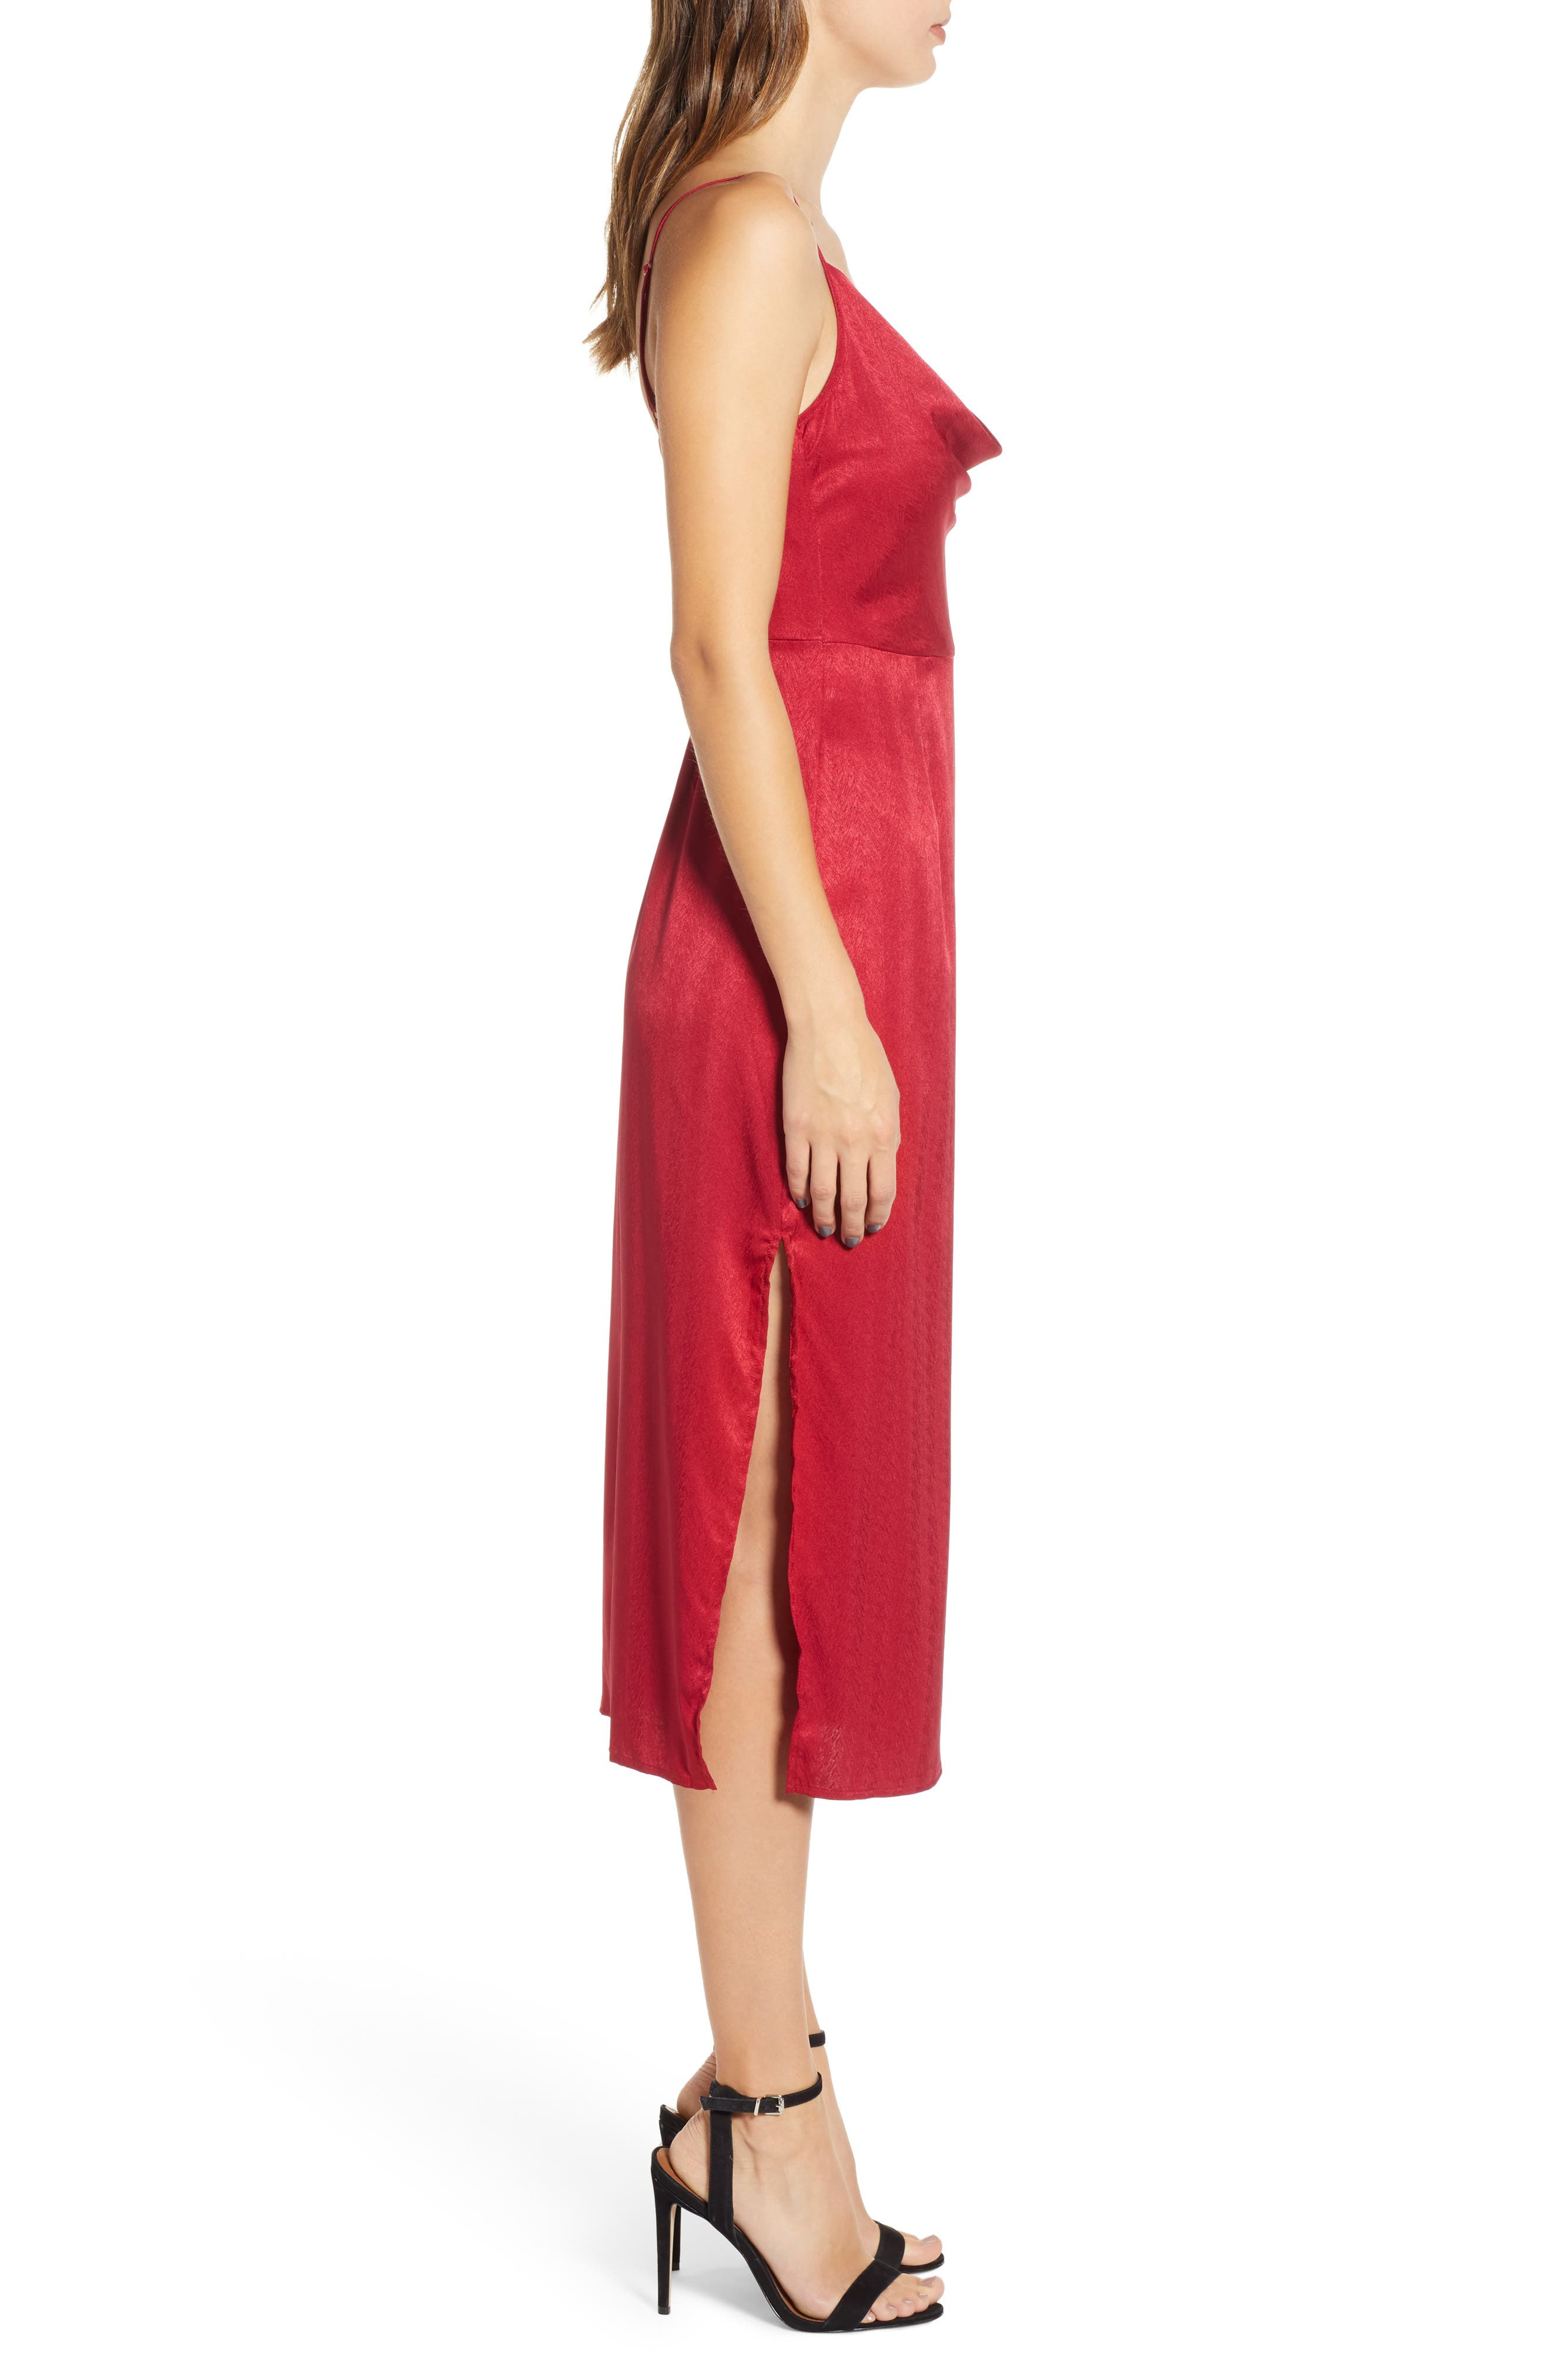 Lotti Cowl Neck Midi Dress,                             Alternate thumbnail 3, color,                             CHERRY